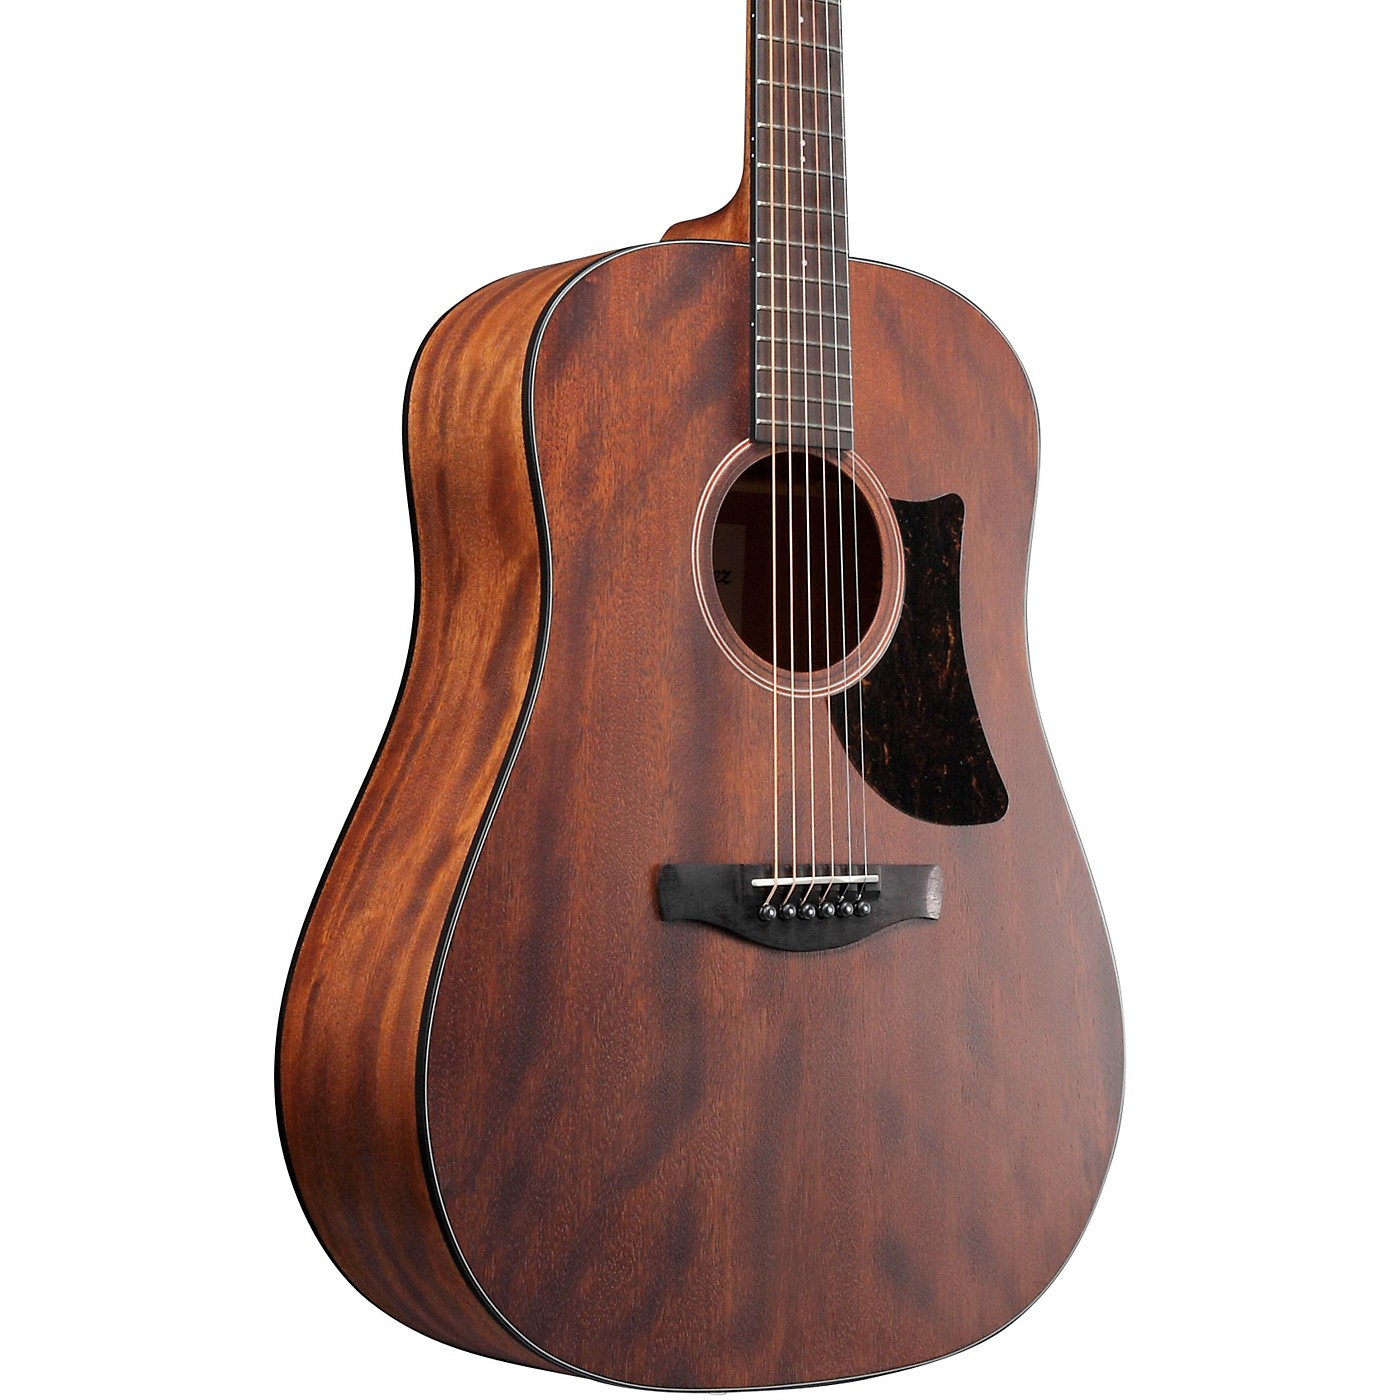 Ibanez AAD140 Advanced Acoustic Solid Top Dreadnought Guitar thumbnail